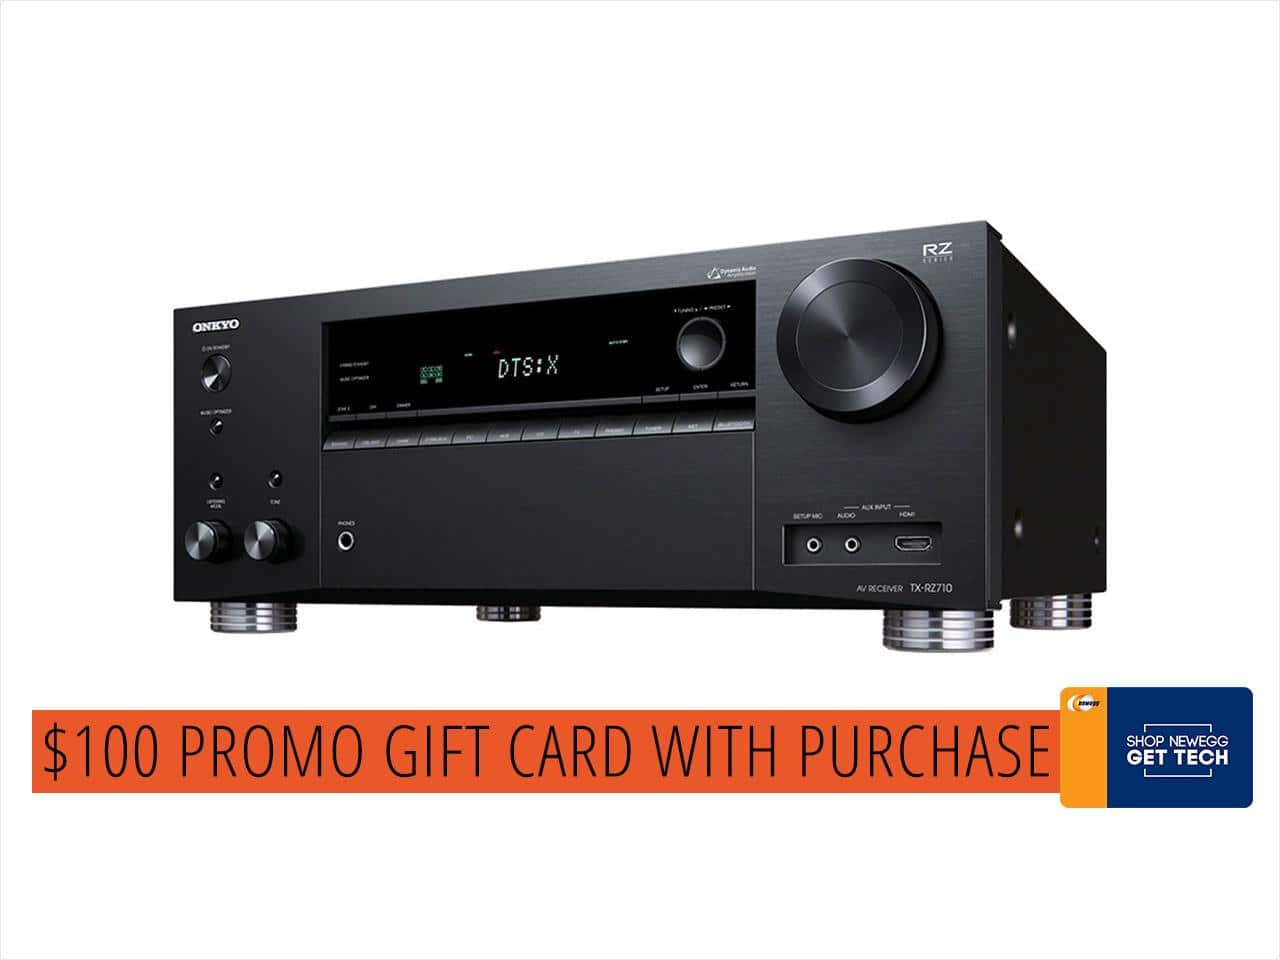 Onkyo TX-RZ710 7.2 Channel A/V Wireless Network Receiver with HDCP2.2/HDR & Bluetooth (+$100 GC) $449